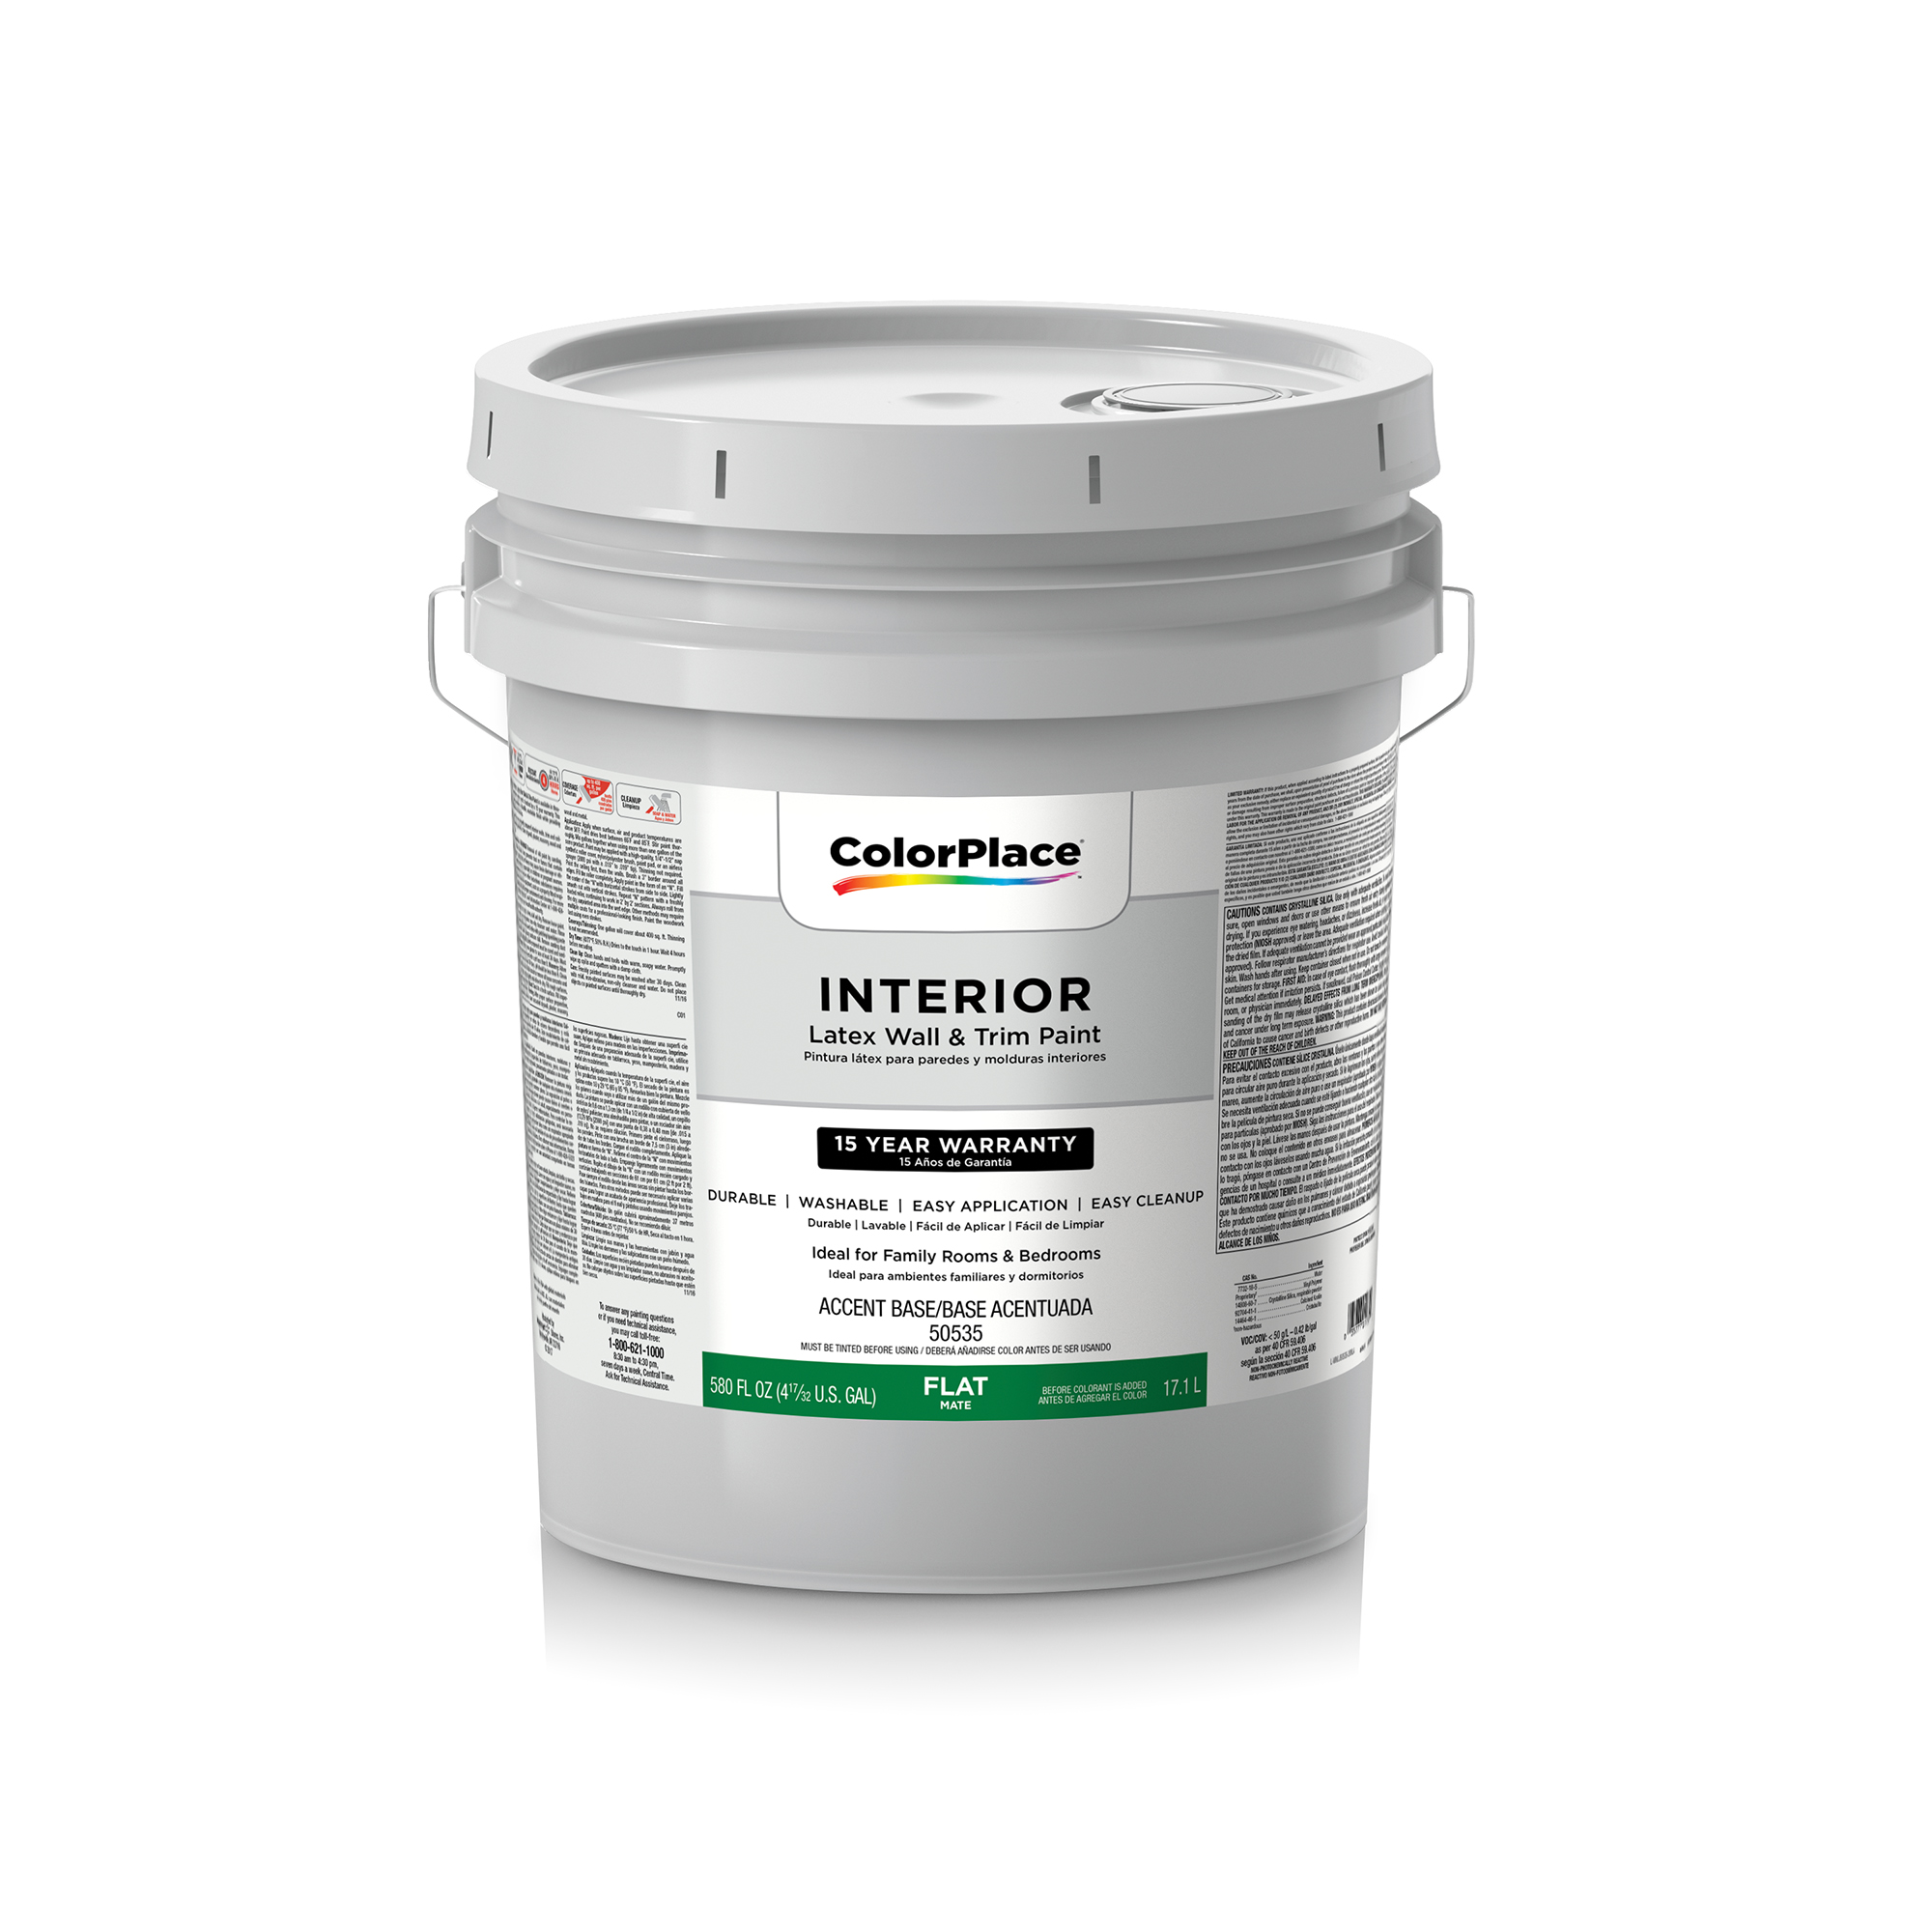 ColorPlace Interior Flat Accent Base Paint, 5 Gal